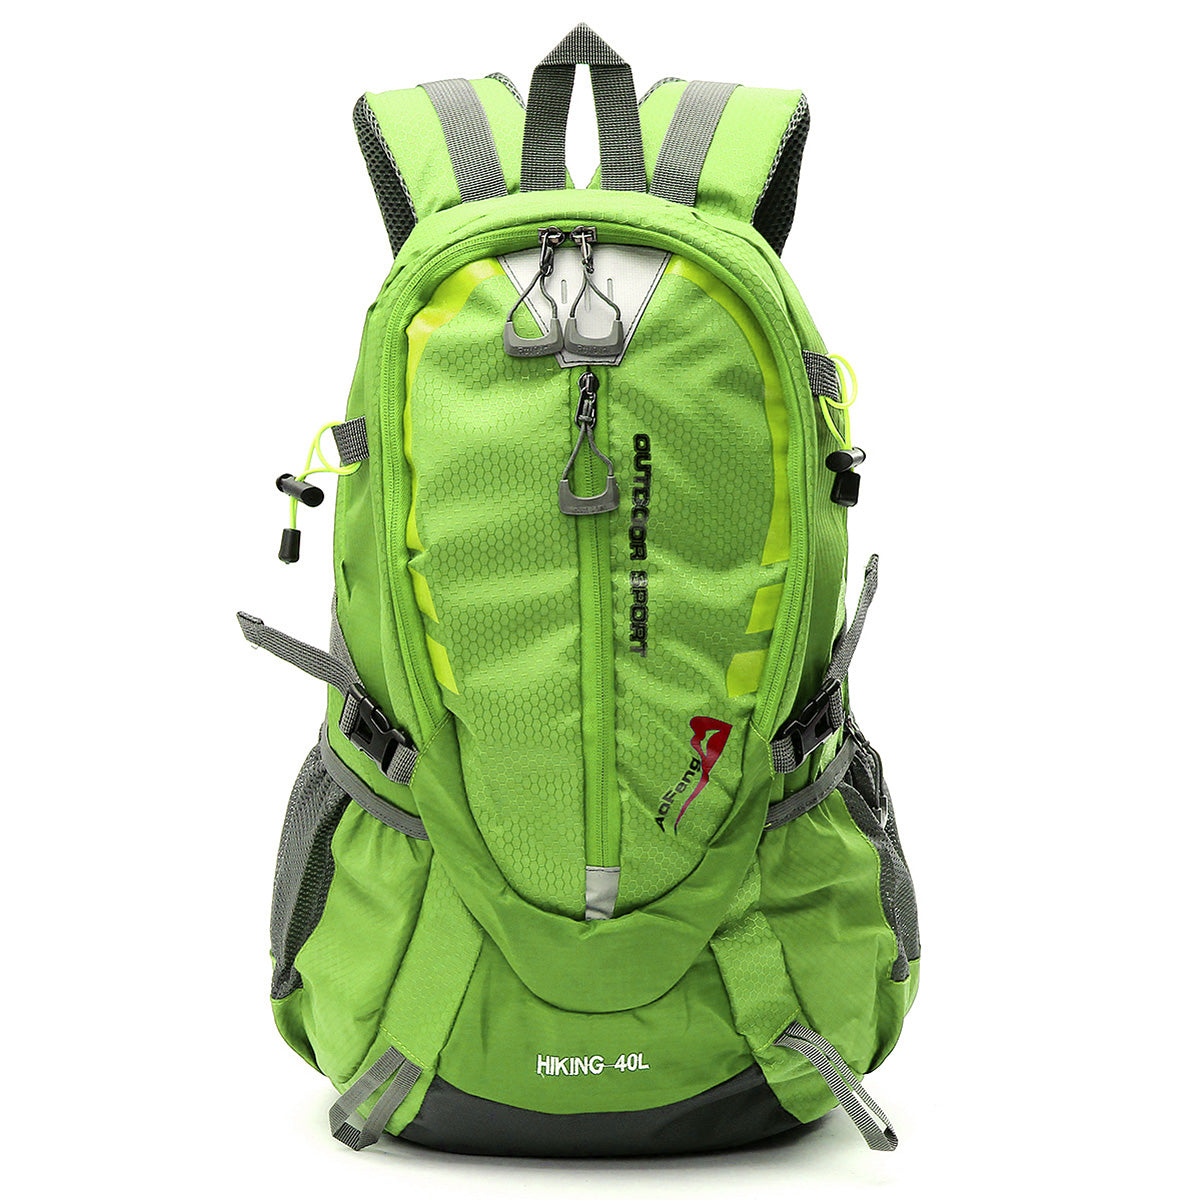 Xmund XD-DY6 40L Waterproof Nylon Backpack Sports Travel Hiking Climbing Camping Bag Mountaineering Cycling Men Women Unisex Rucksack